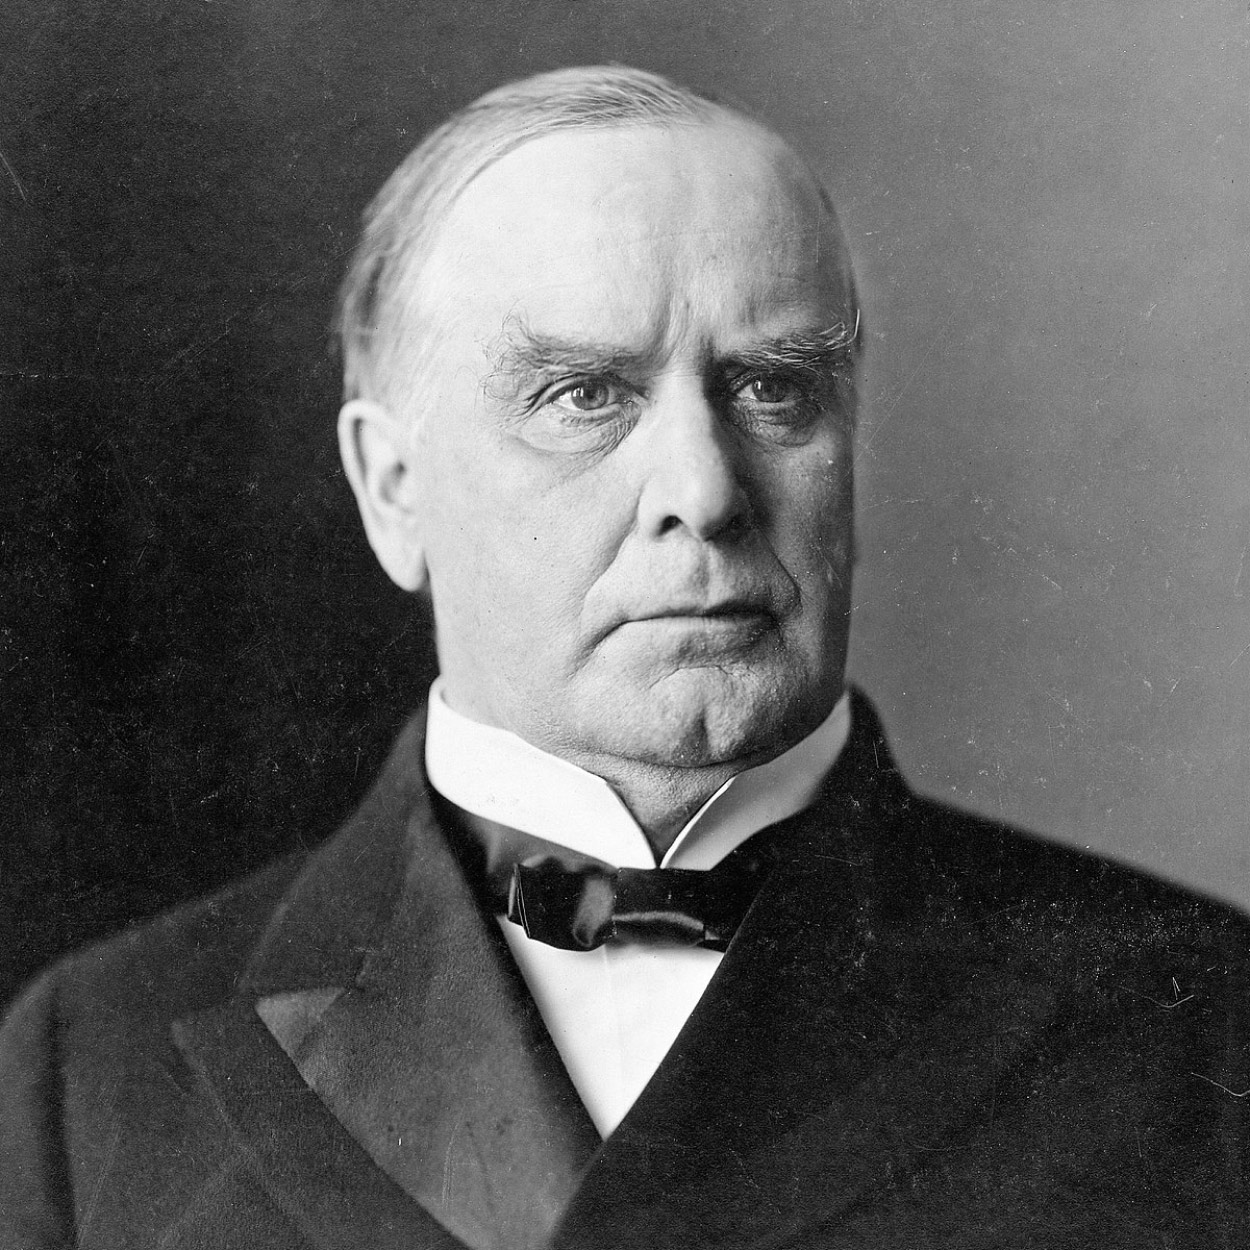 McKinley as 58-year-old president.